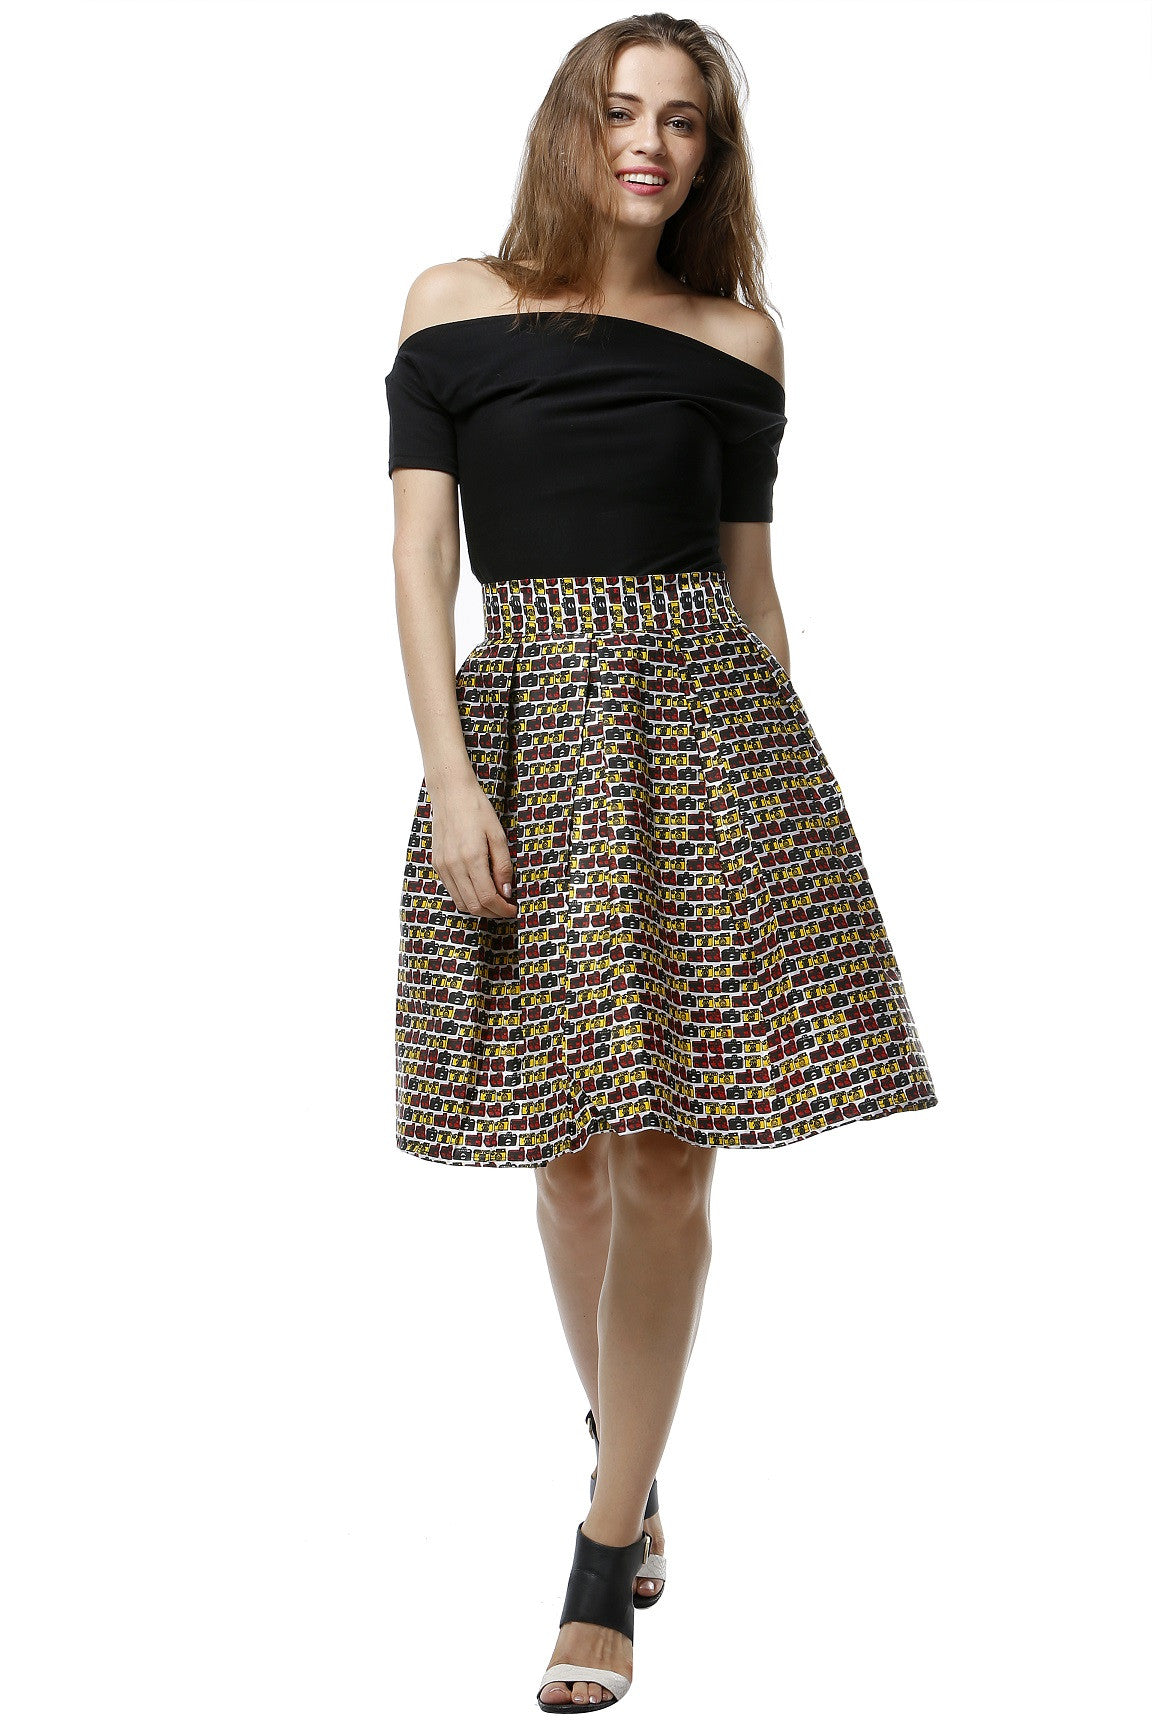 Quirky Camera Print Boxed Pleat Skirt